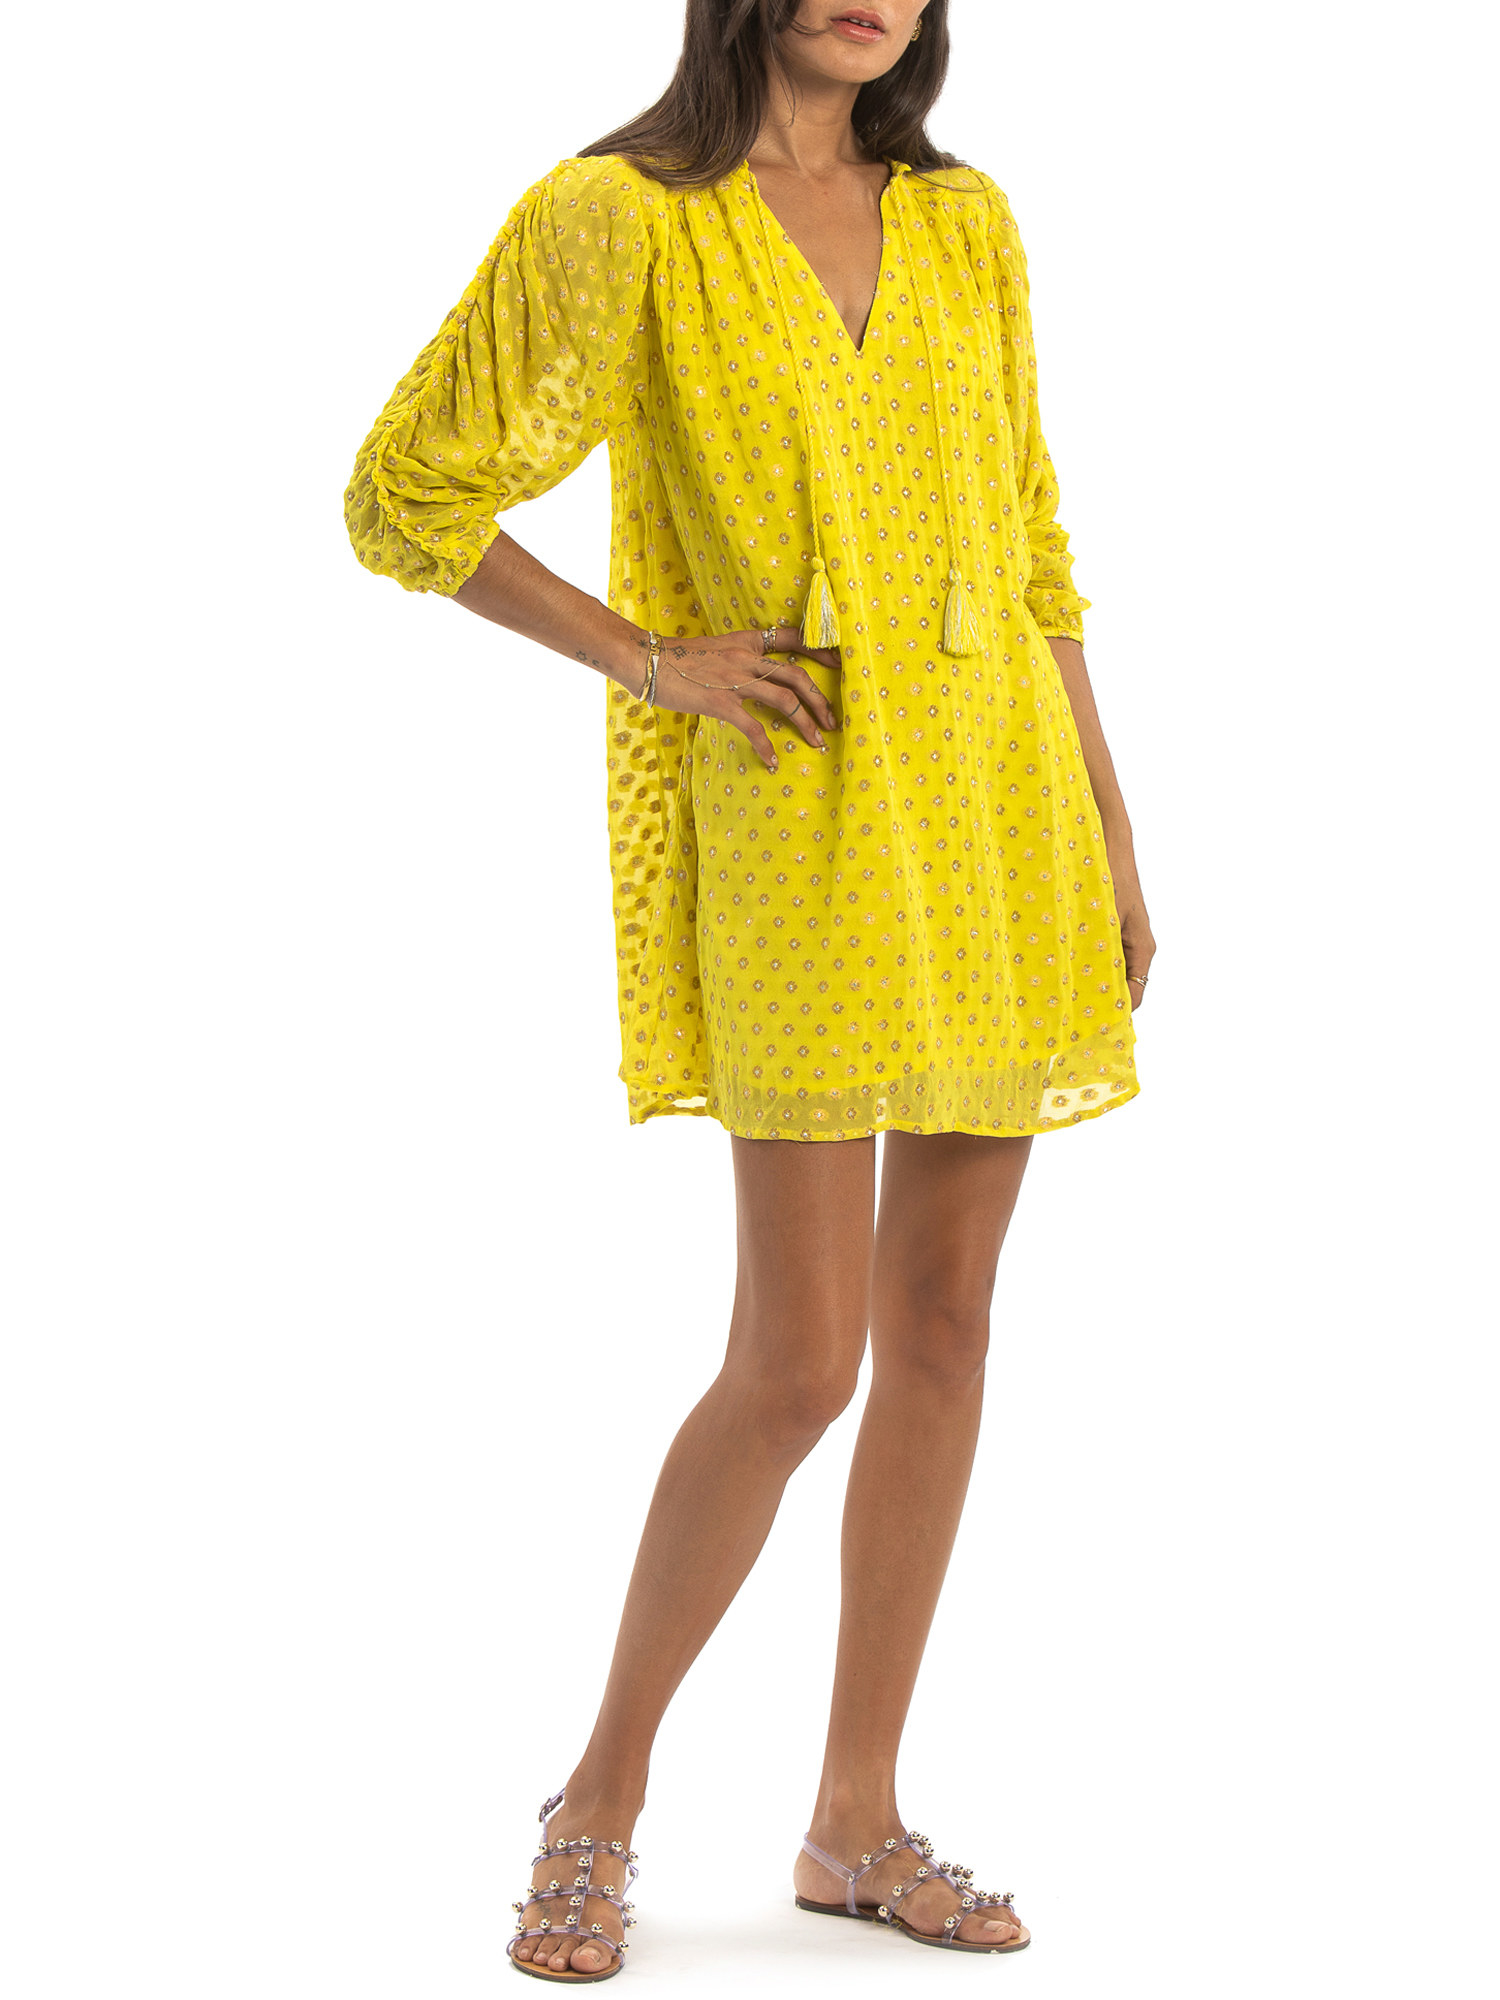 model in a yellow dress with 3/4 sleeves and tassels at the collar